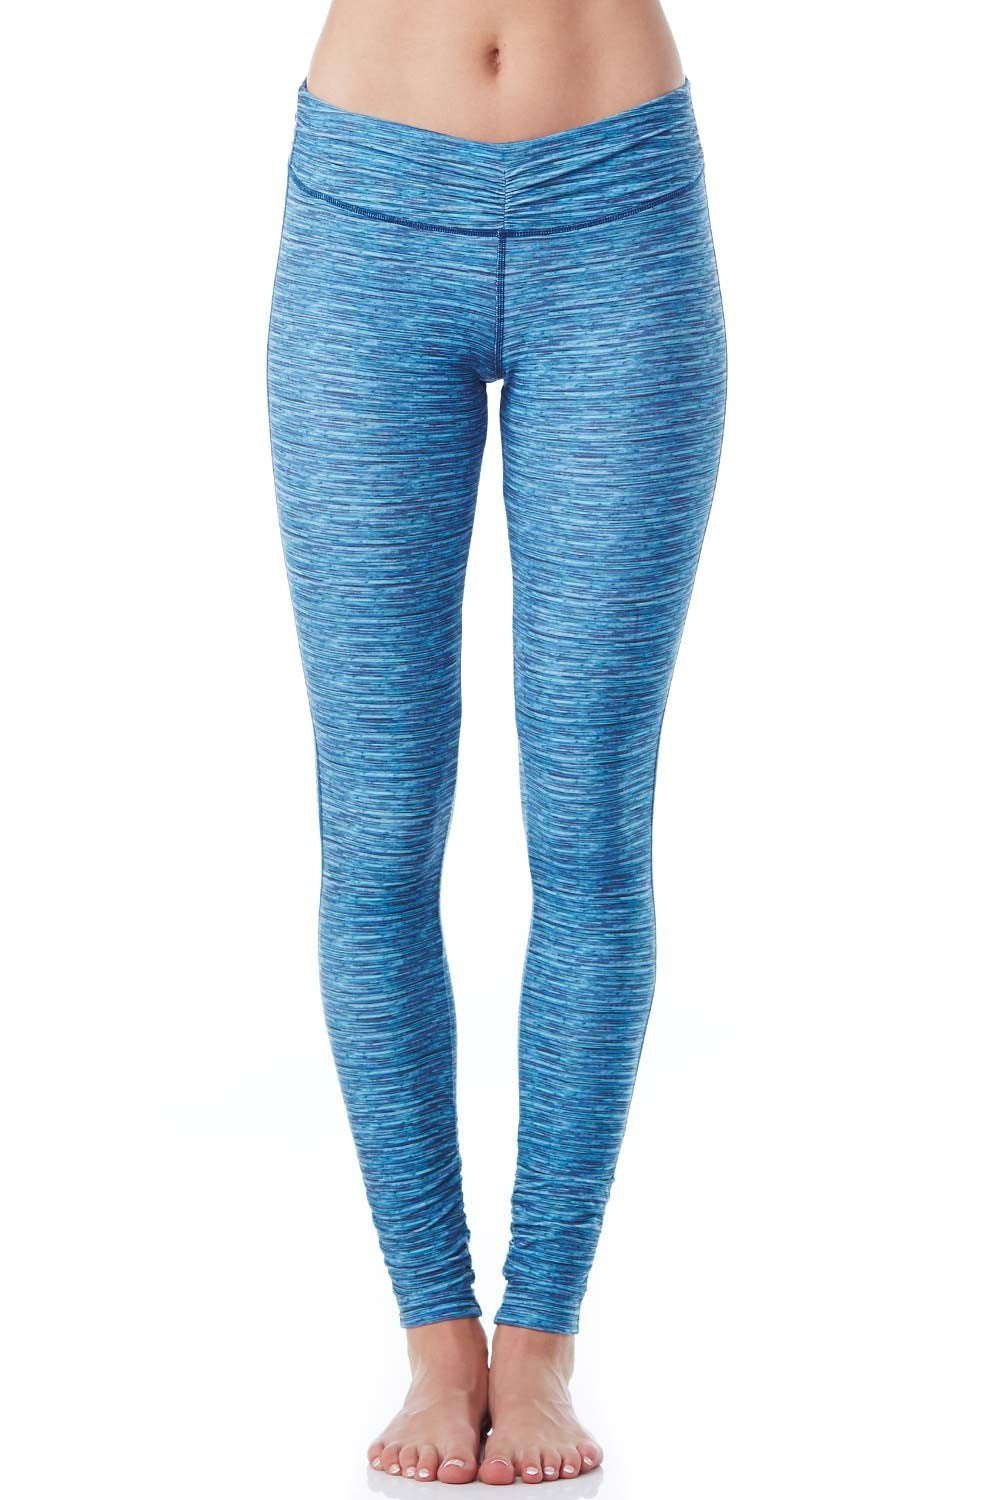 Sequoia Legging Coral Blue